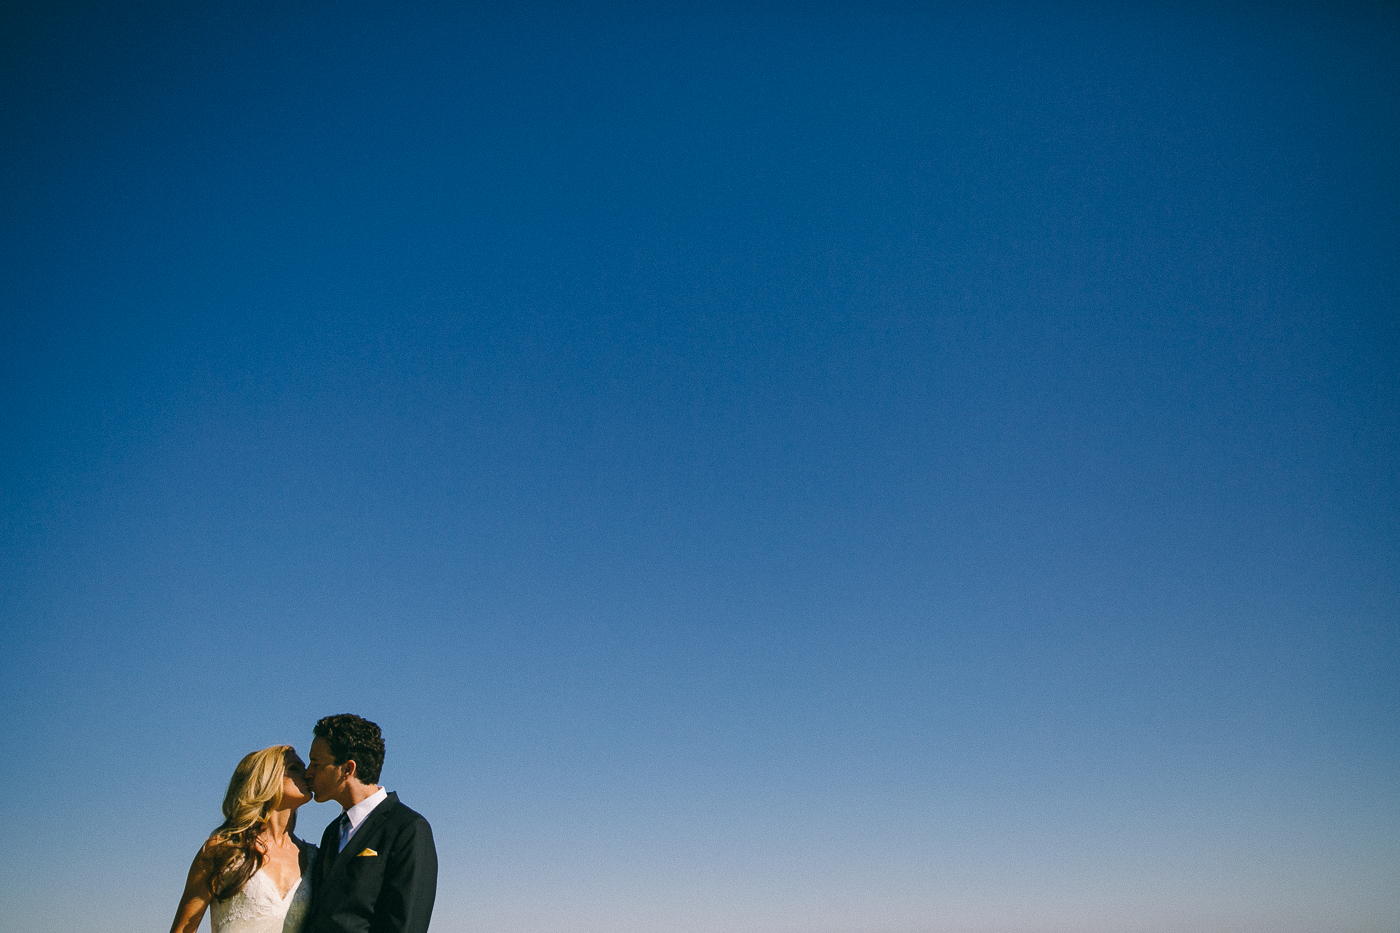 WEDDING_LEAF_PHOTOGRAPHY_DARLINGTON_HOUSE_LA_JOLLA_CATAMARAN_HOTEL_KIM_&_BOB_WED_2013_7X9A5708